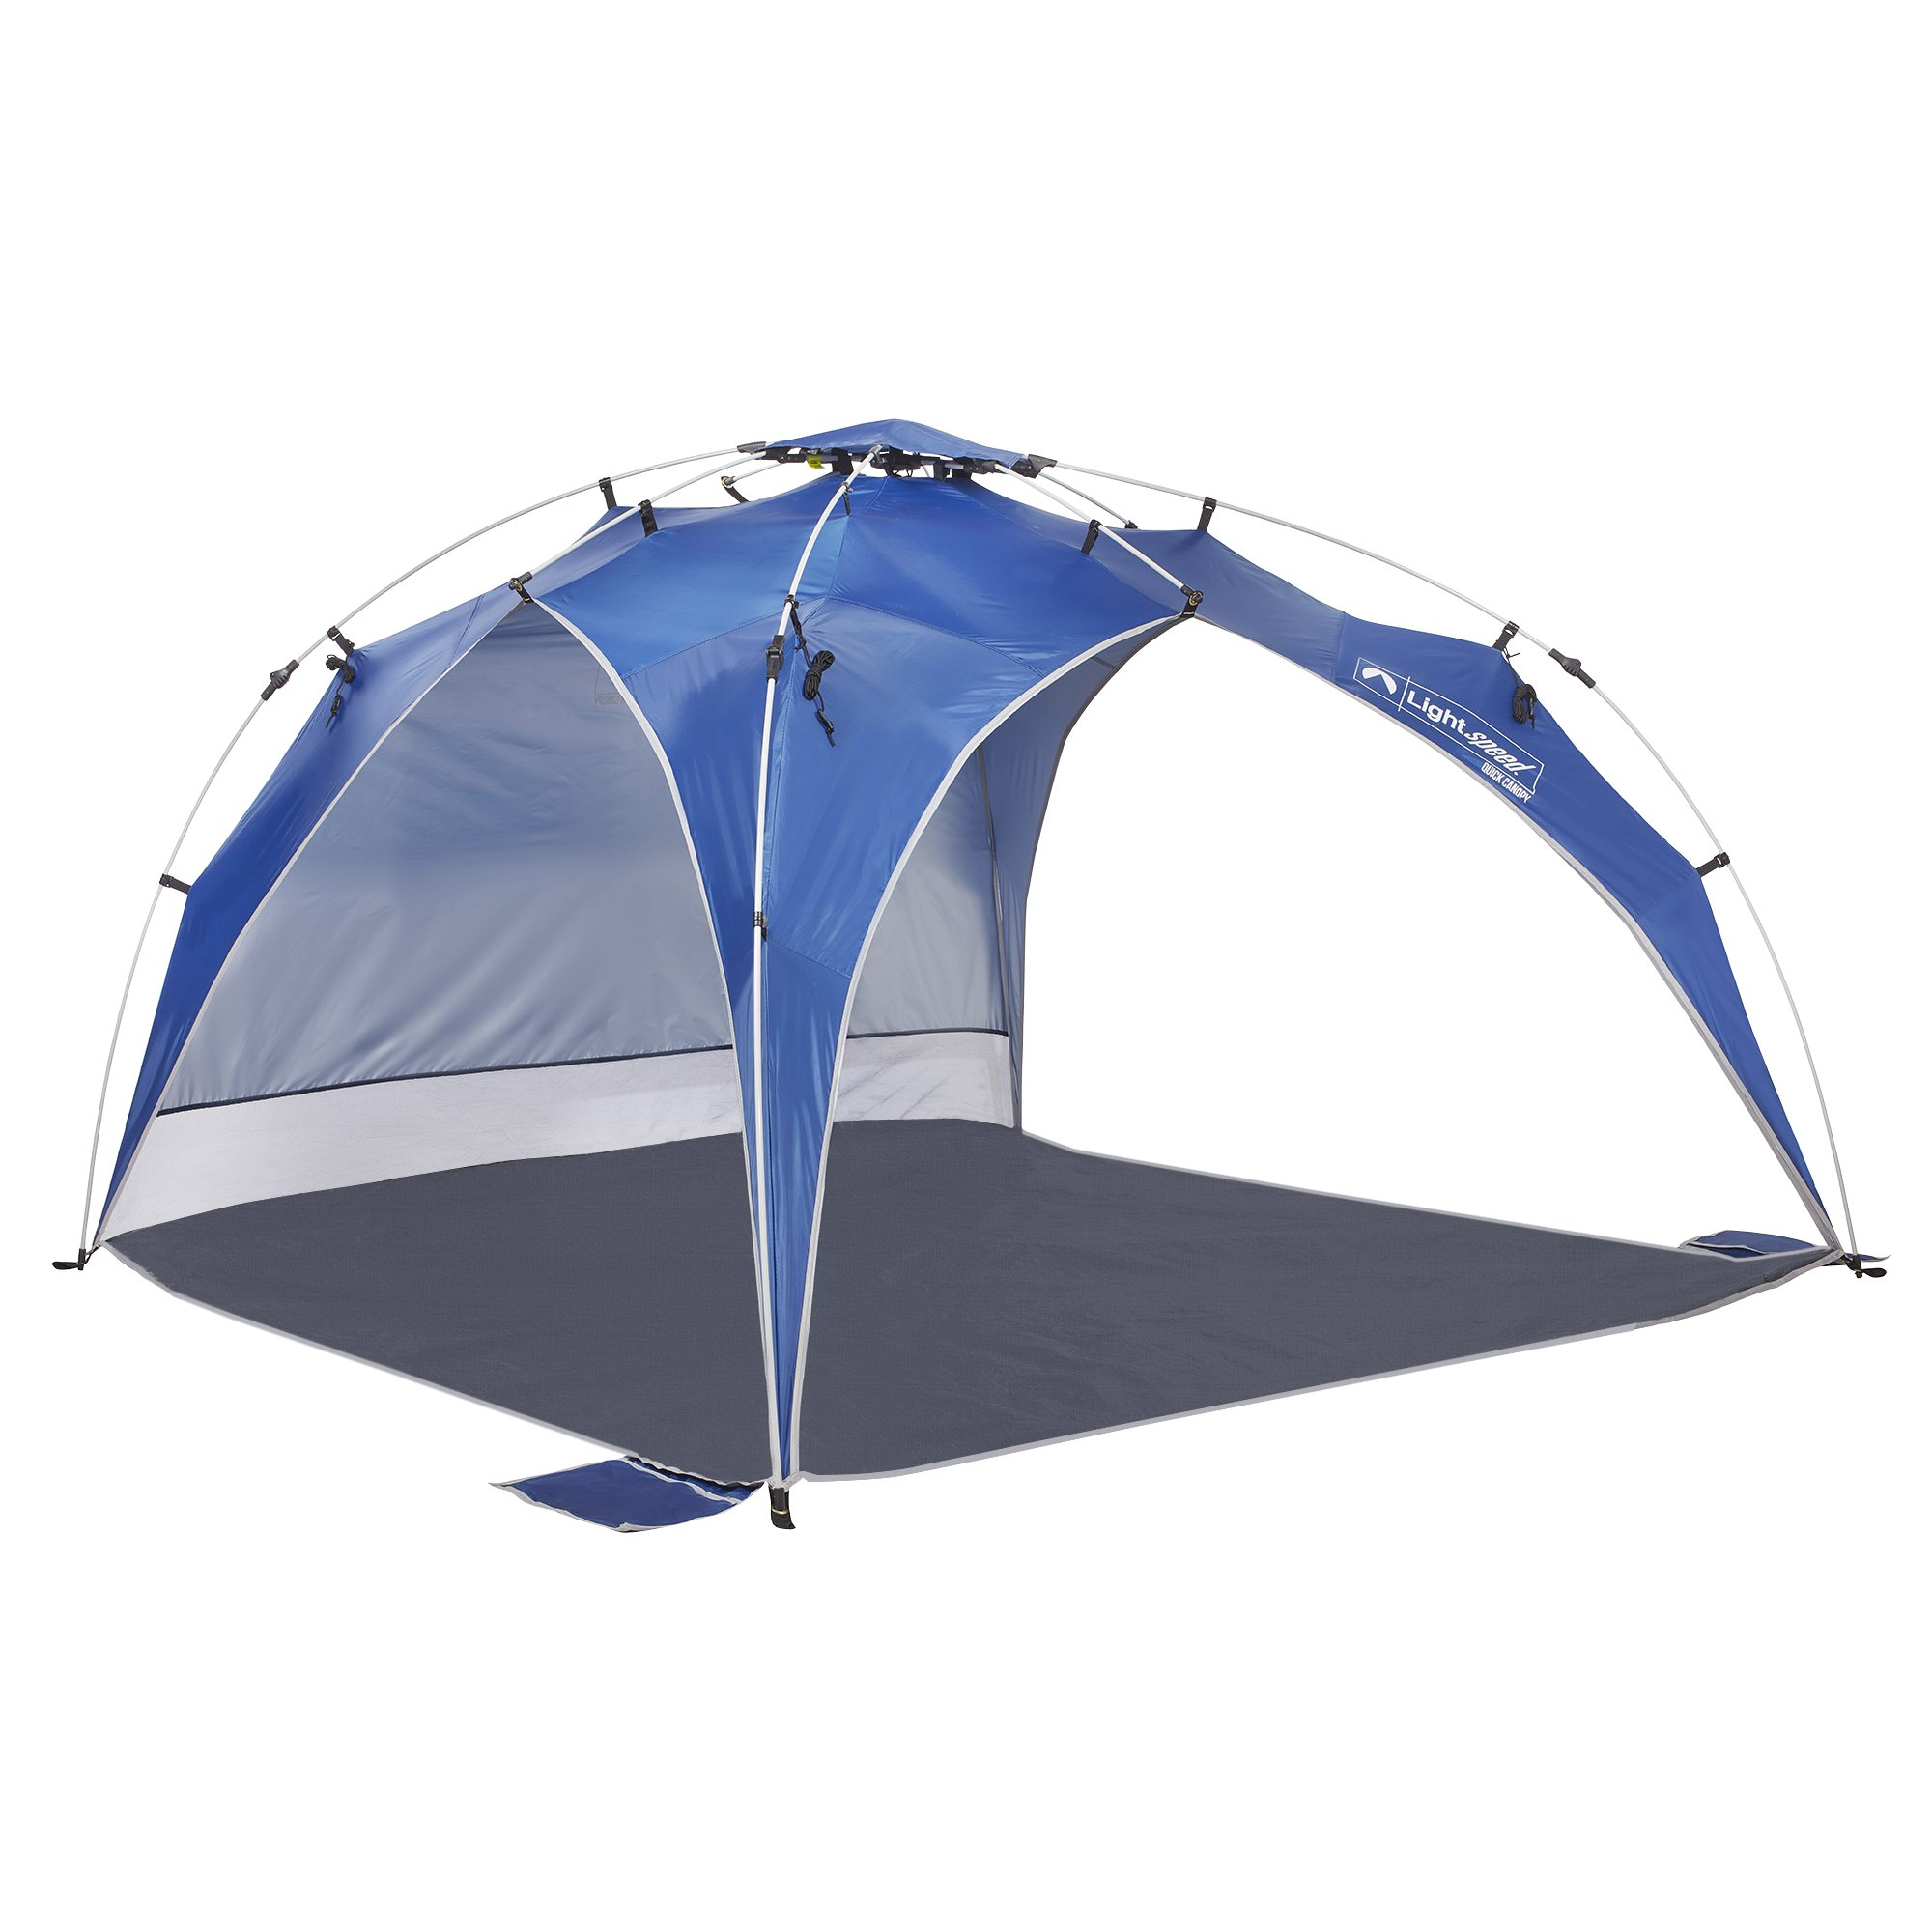 Lightspeed Outdoors Quick Canopy Instant Pop Up Shade Tent by Lightspeed Outdoors